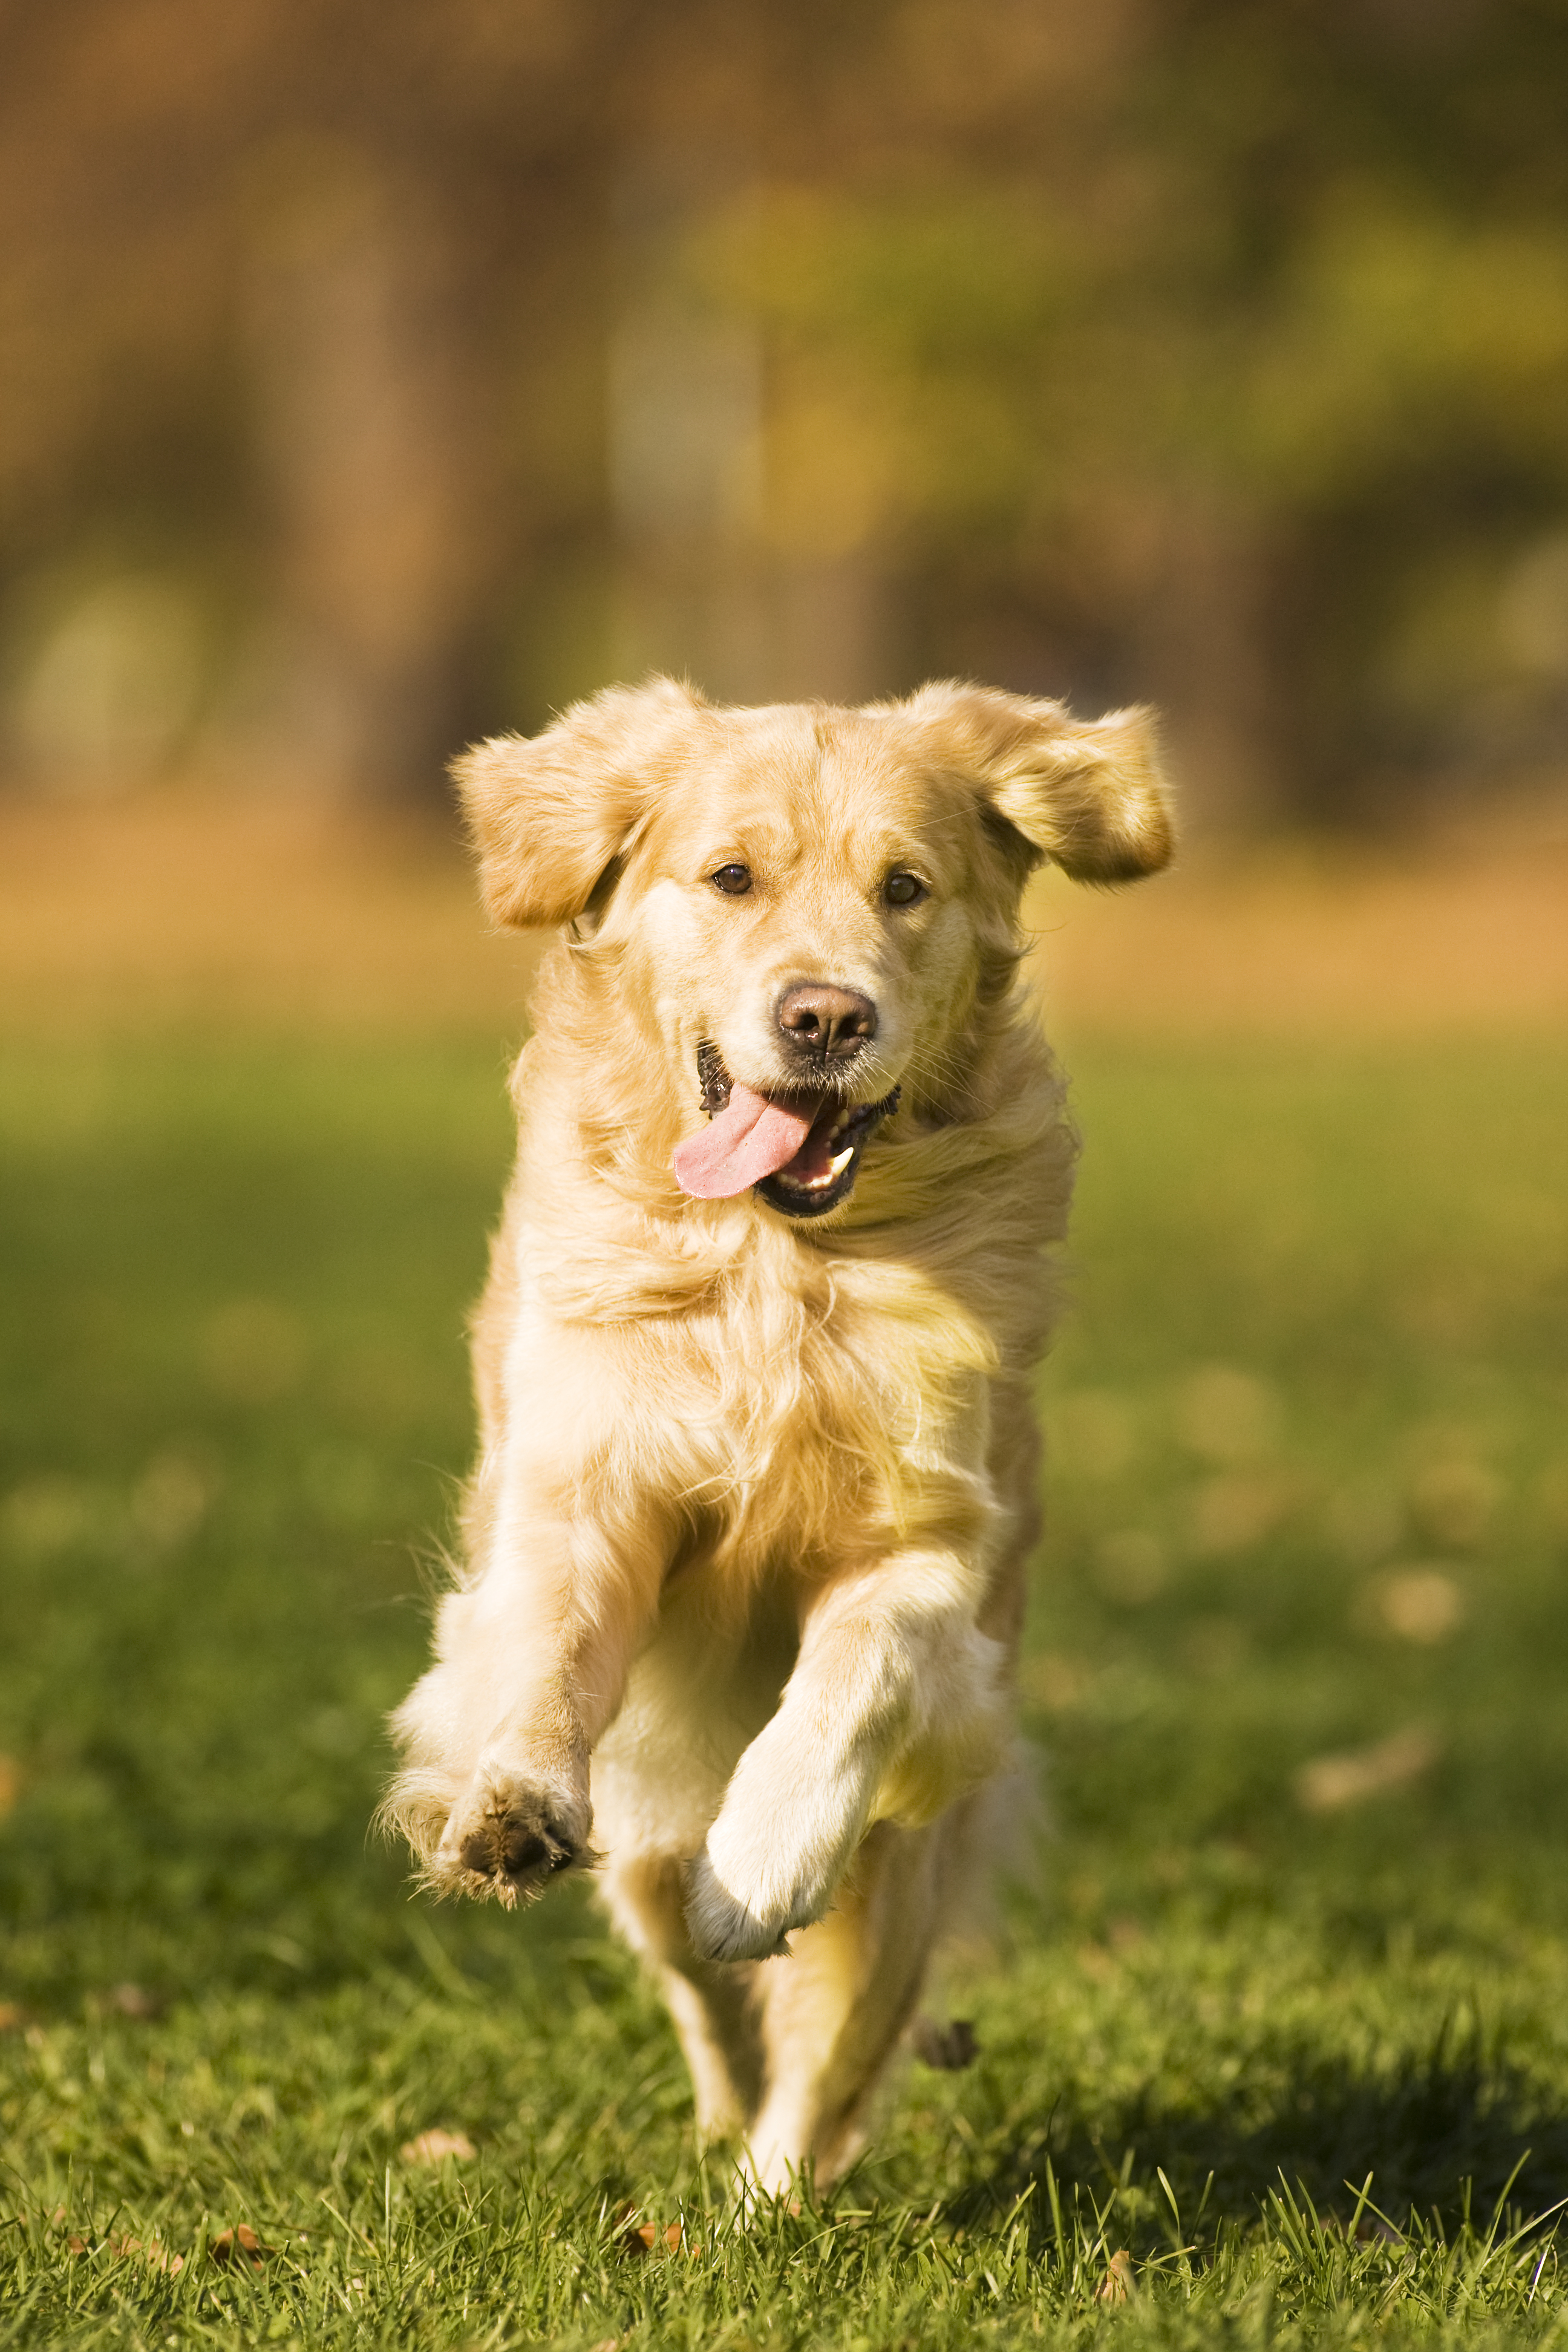 Golden retriever running on grass with tongue hanging out right side of mouth